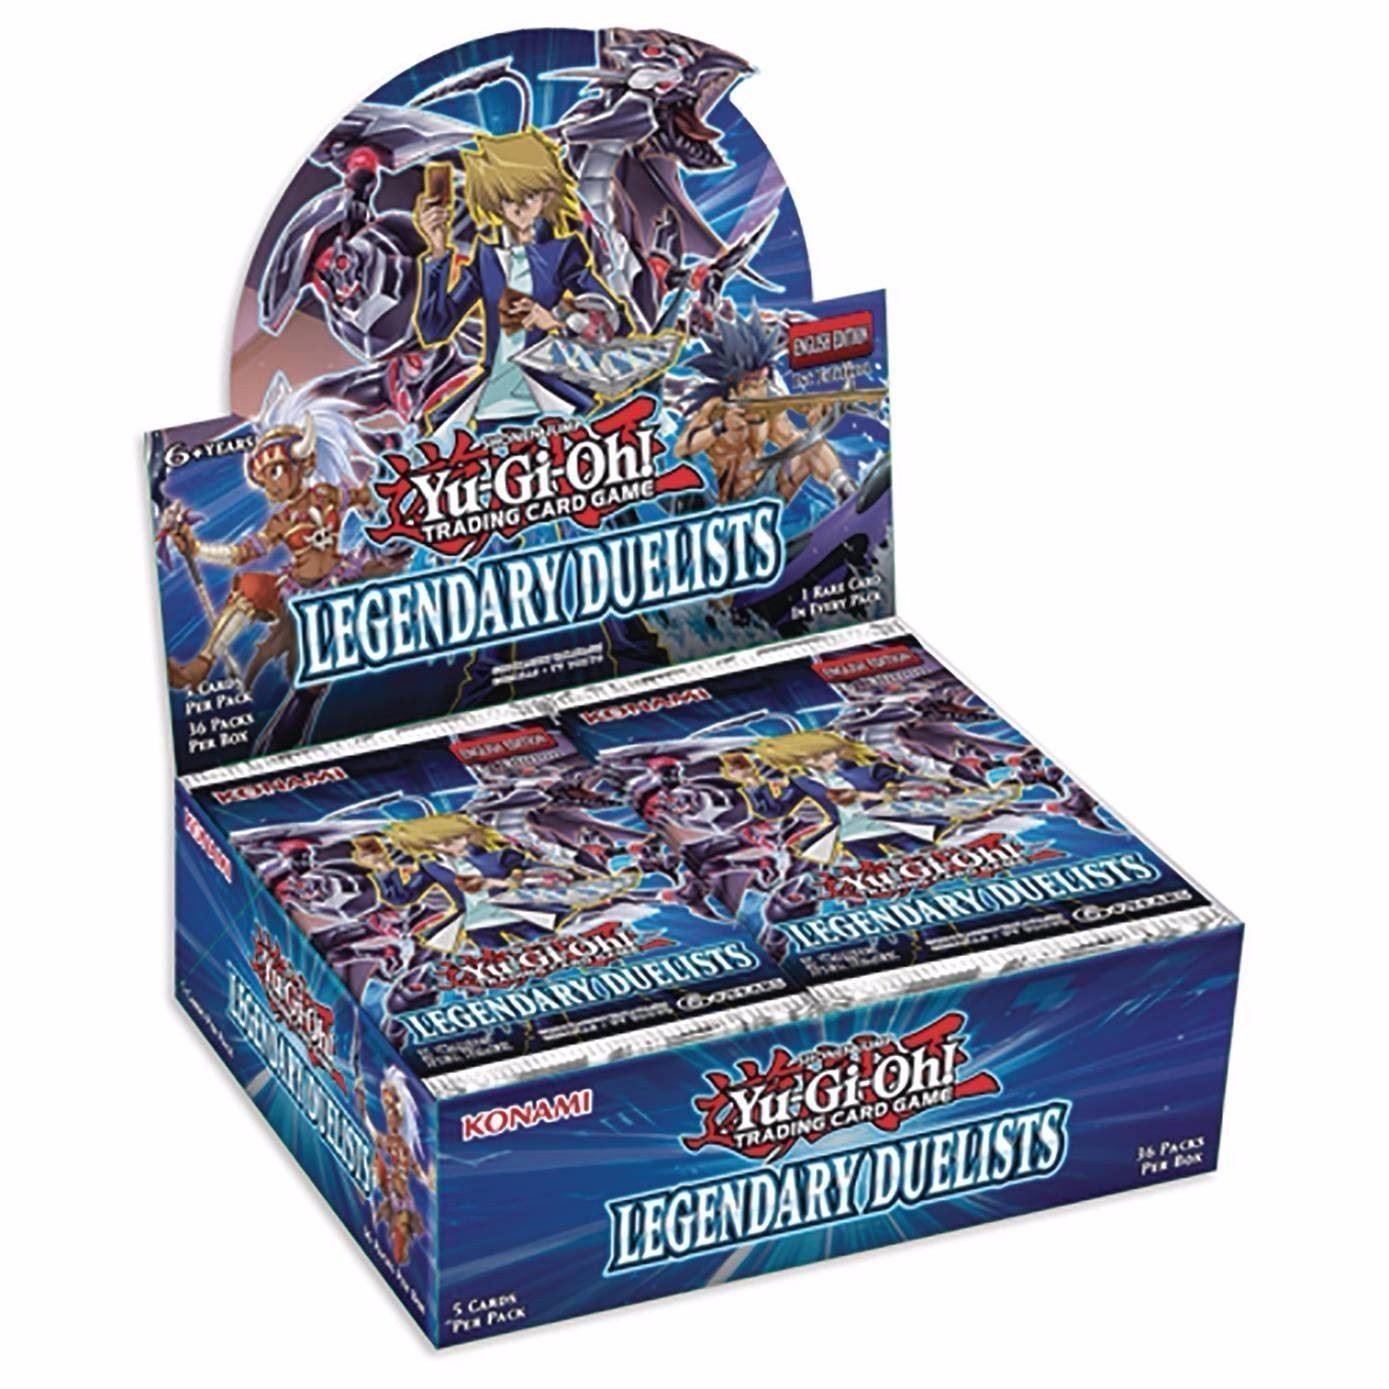 Yugioh LEGENDARY DUELISTS 1st Edition Sealed Booster Box